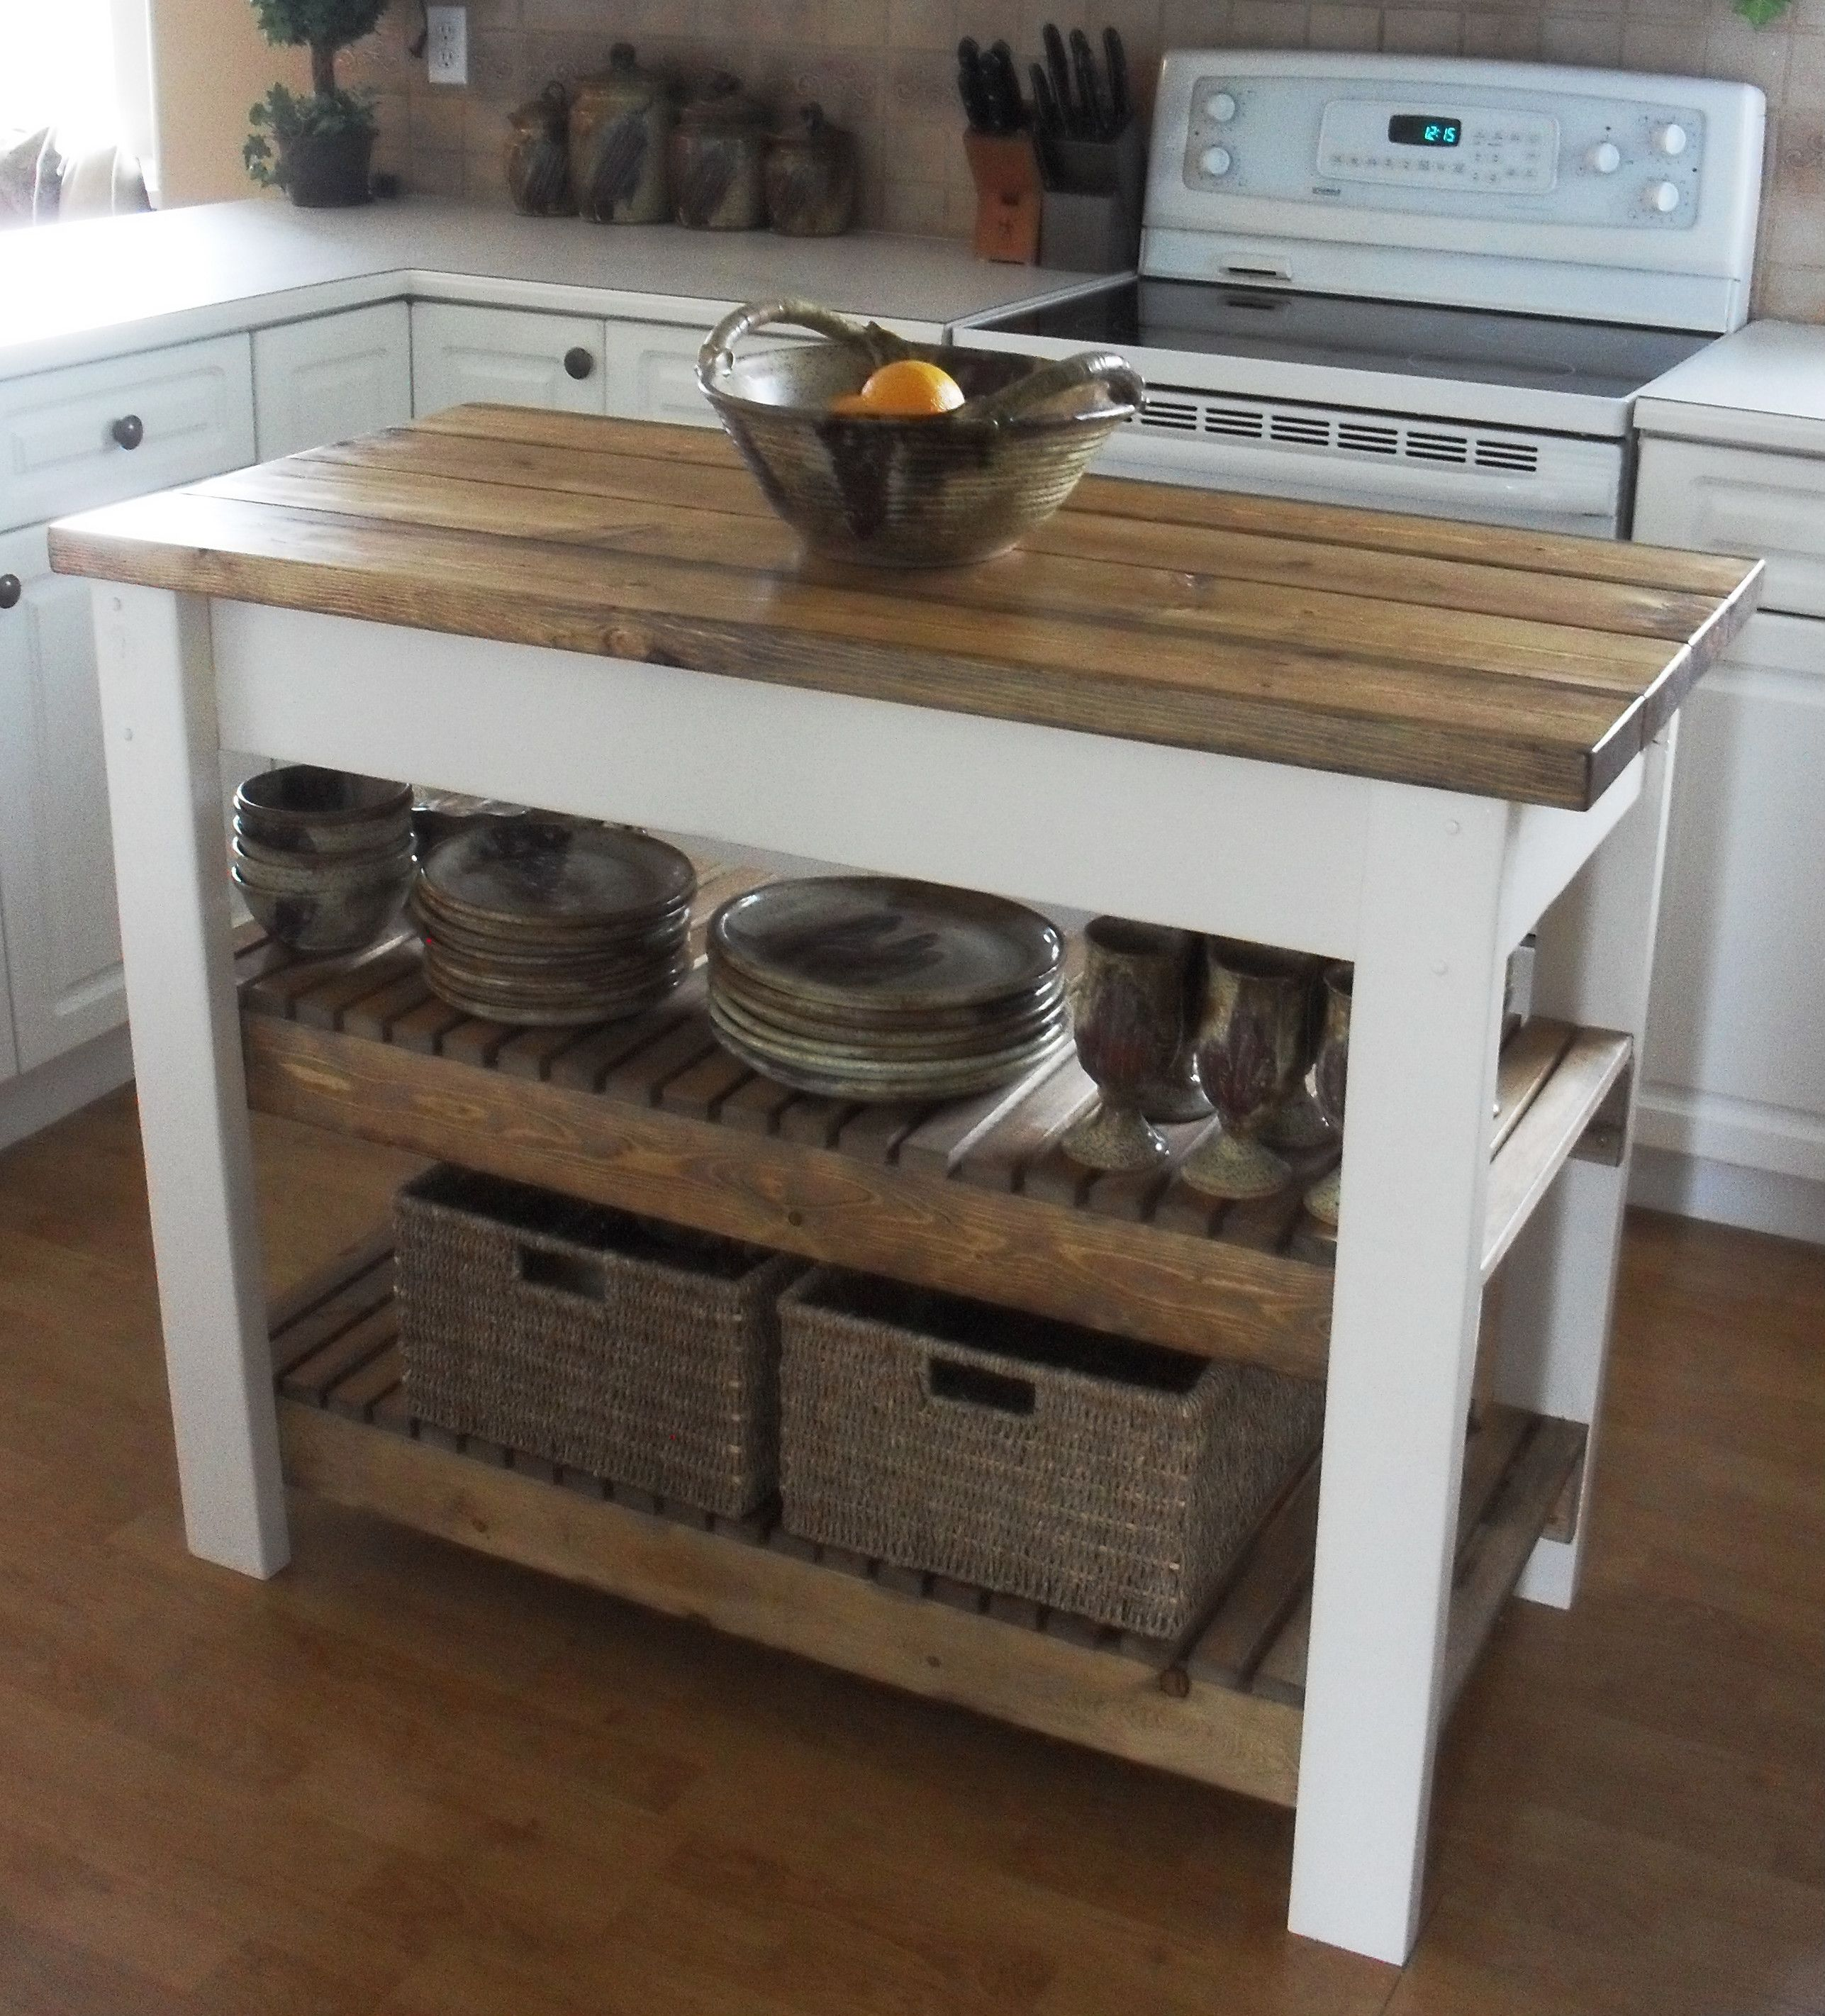 Kitchen Island Idea 15 Wonderful Diy Ideas To Upgrade The Kitchen10 Do It Yourself